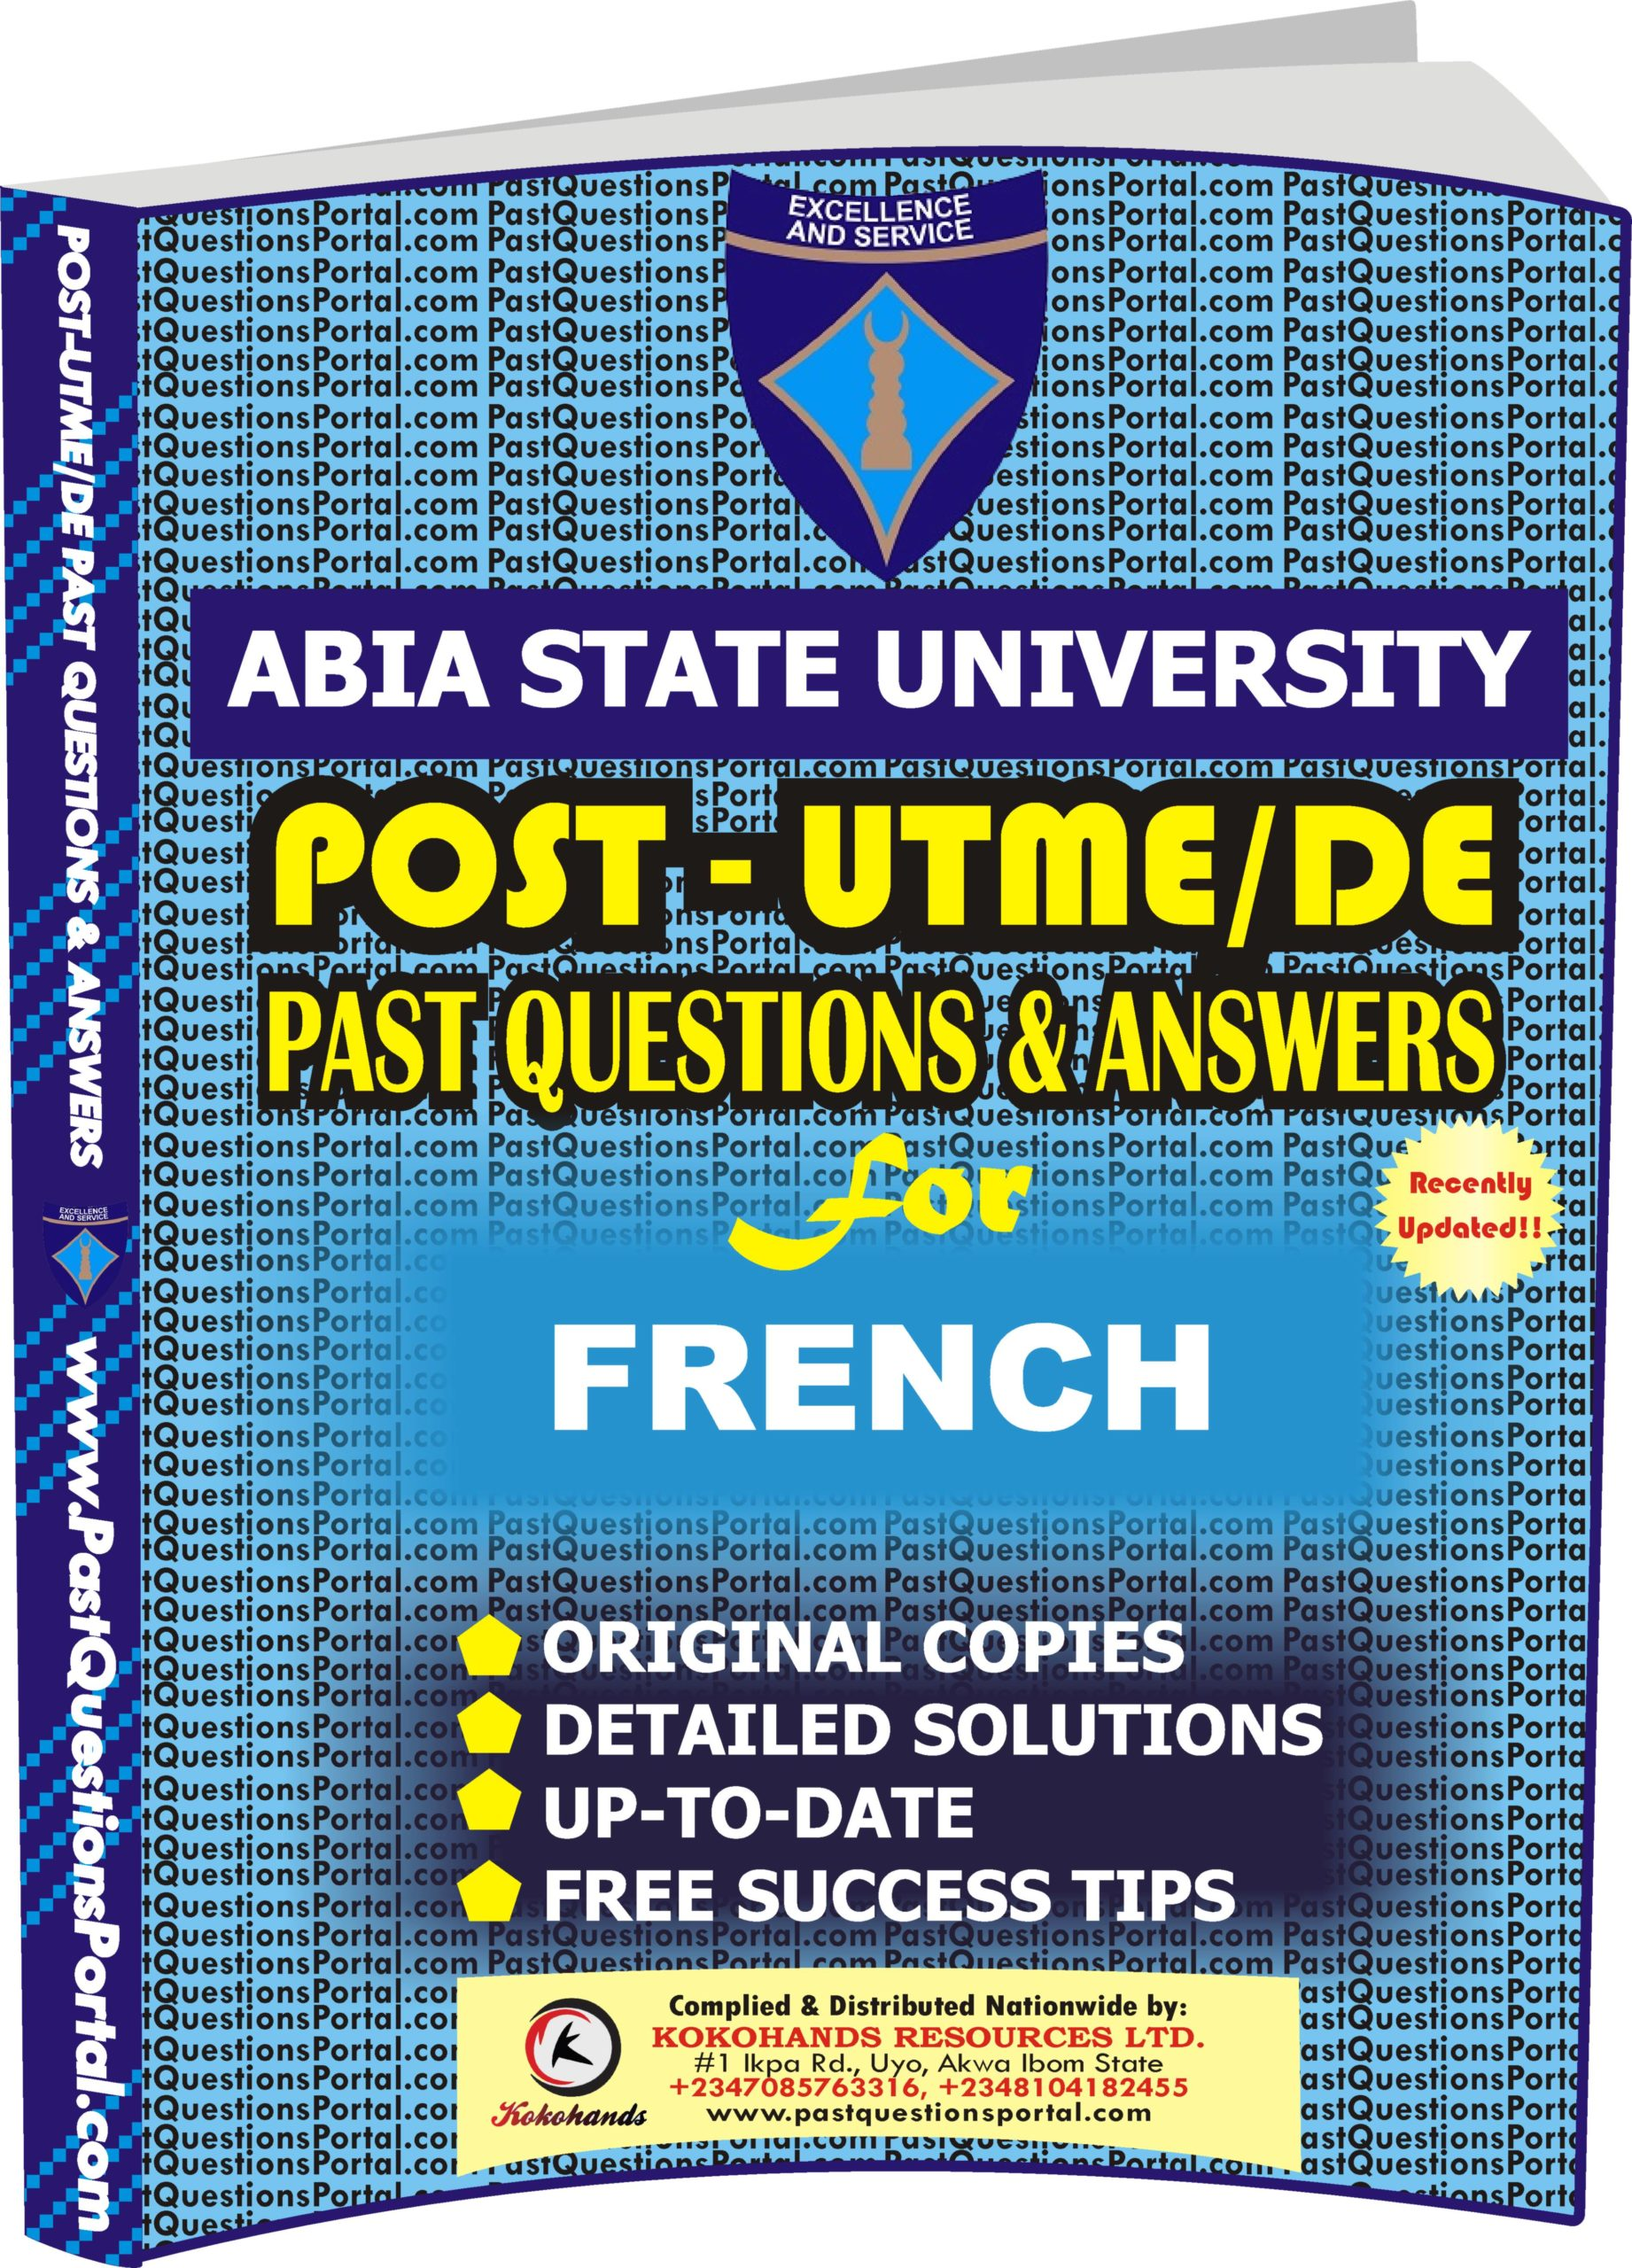 ABSU Post UTME Past Questions for FRENCH